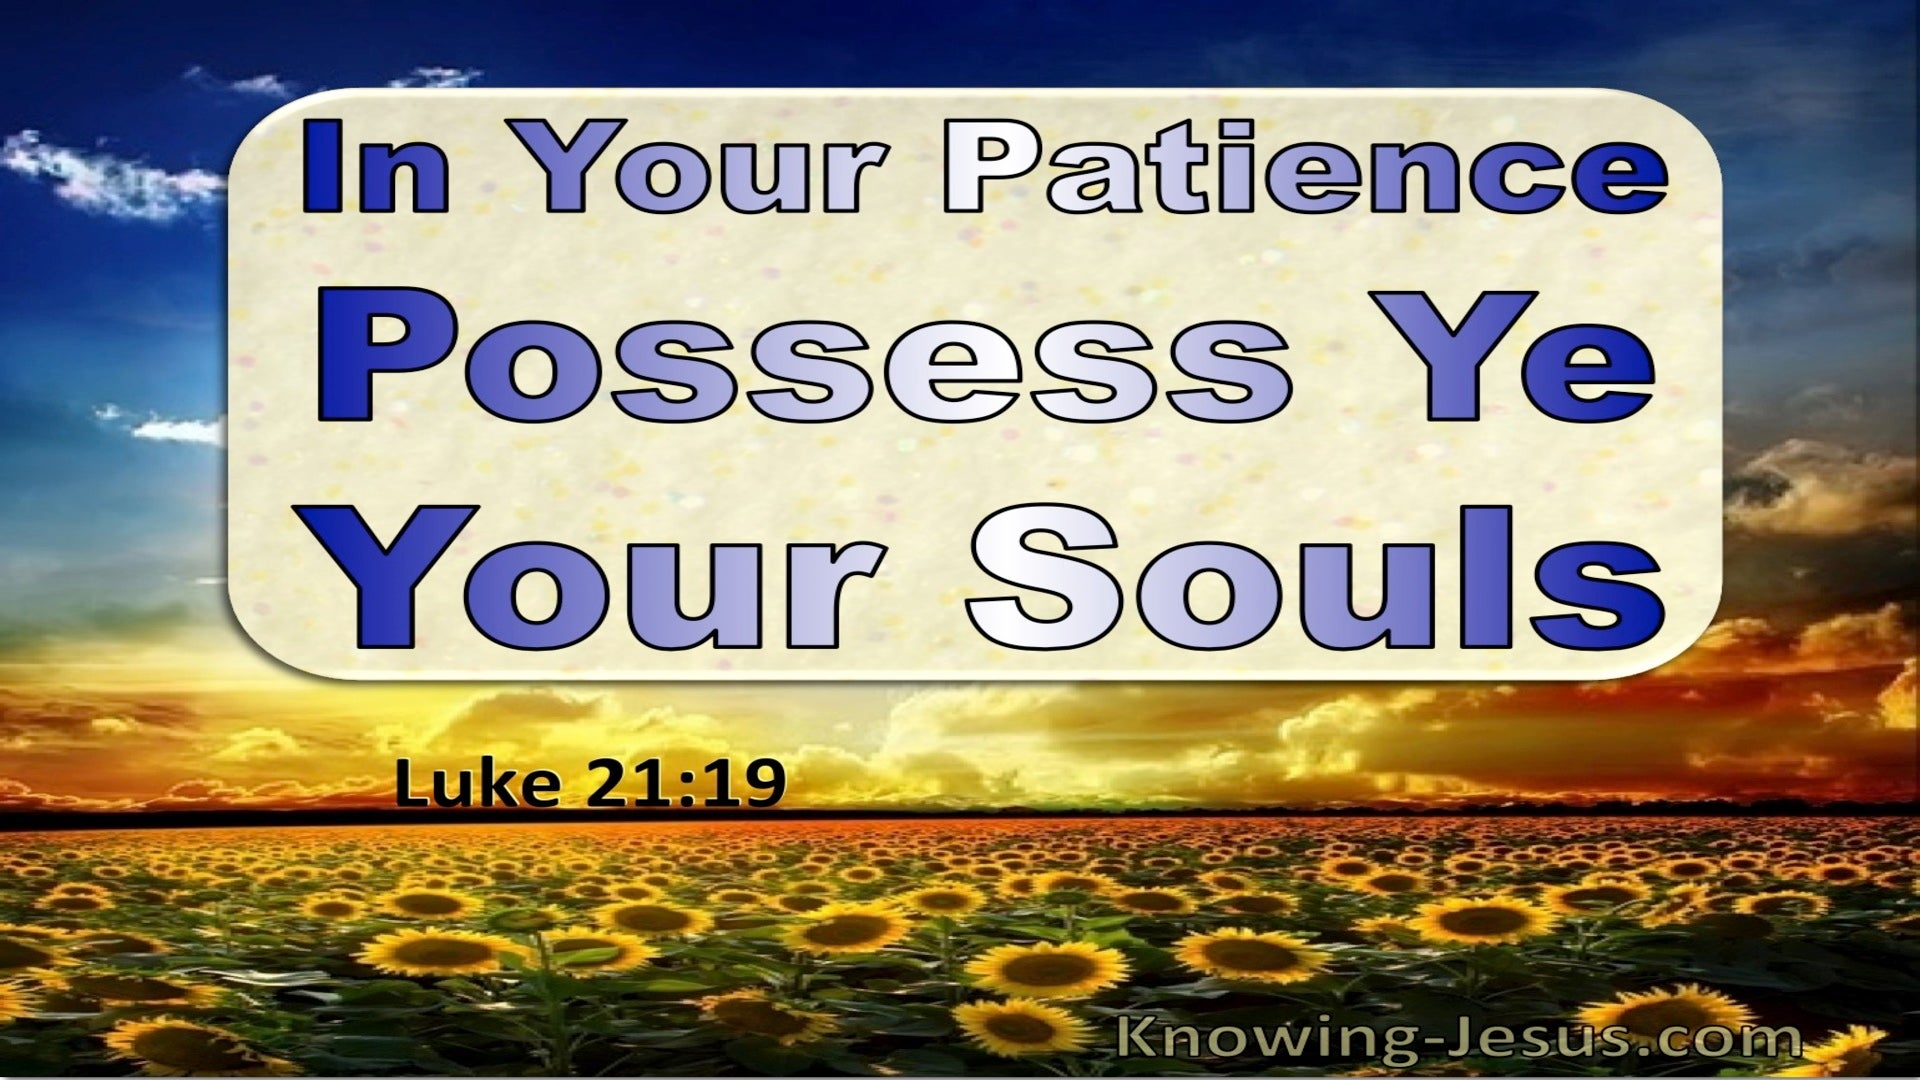 Luke 21:19 In Your Patience Posses Ye Your Souls (utmost)05:20